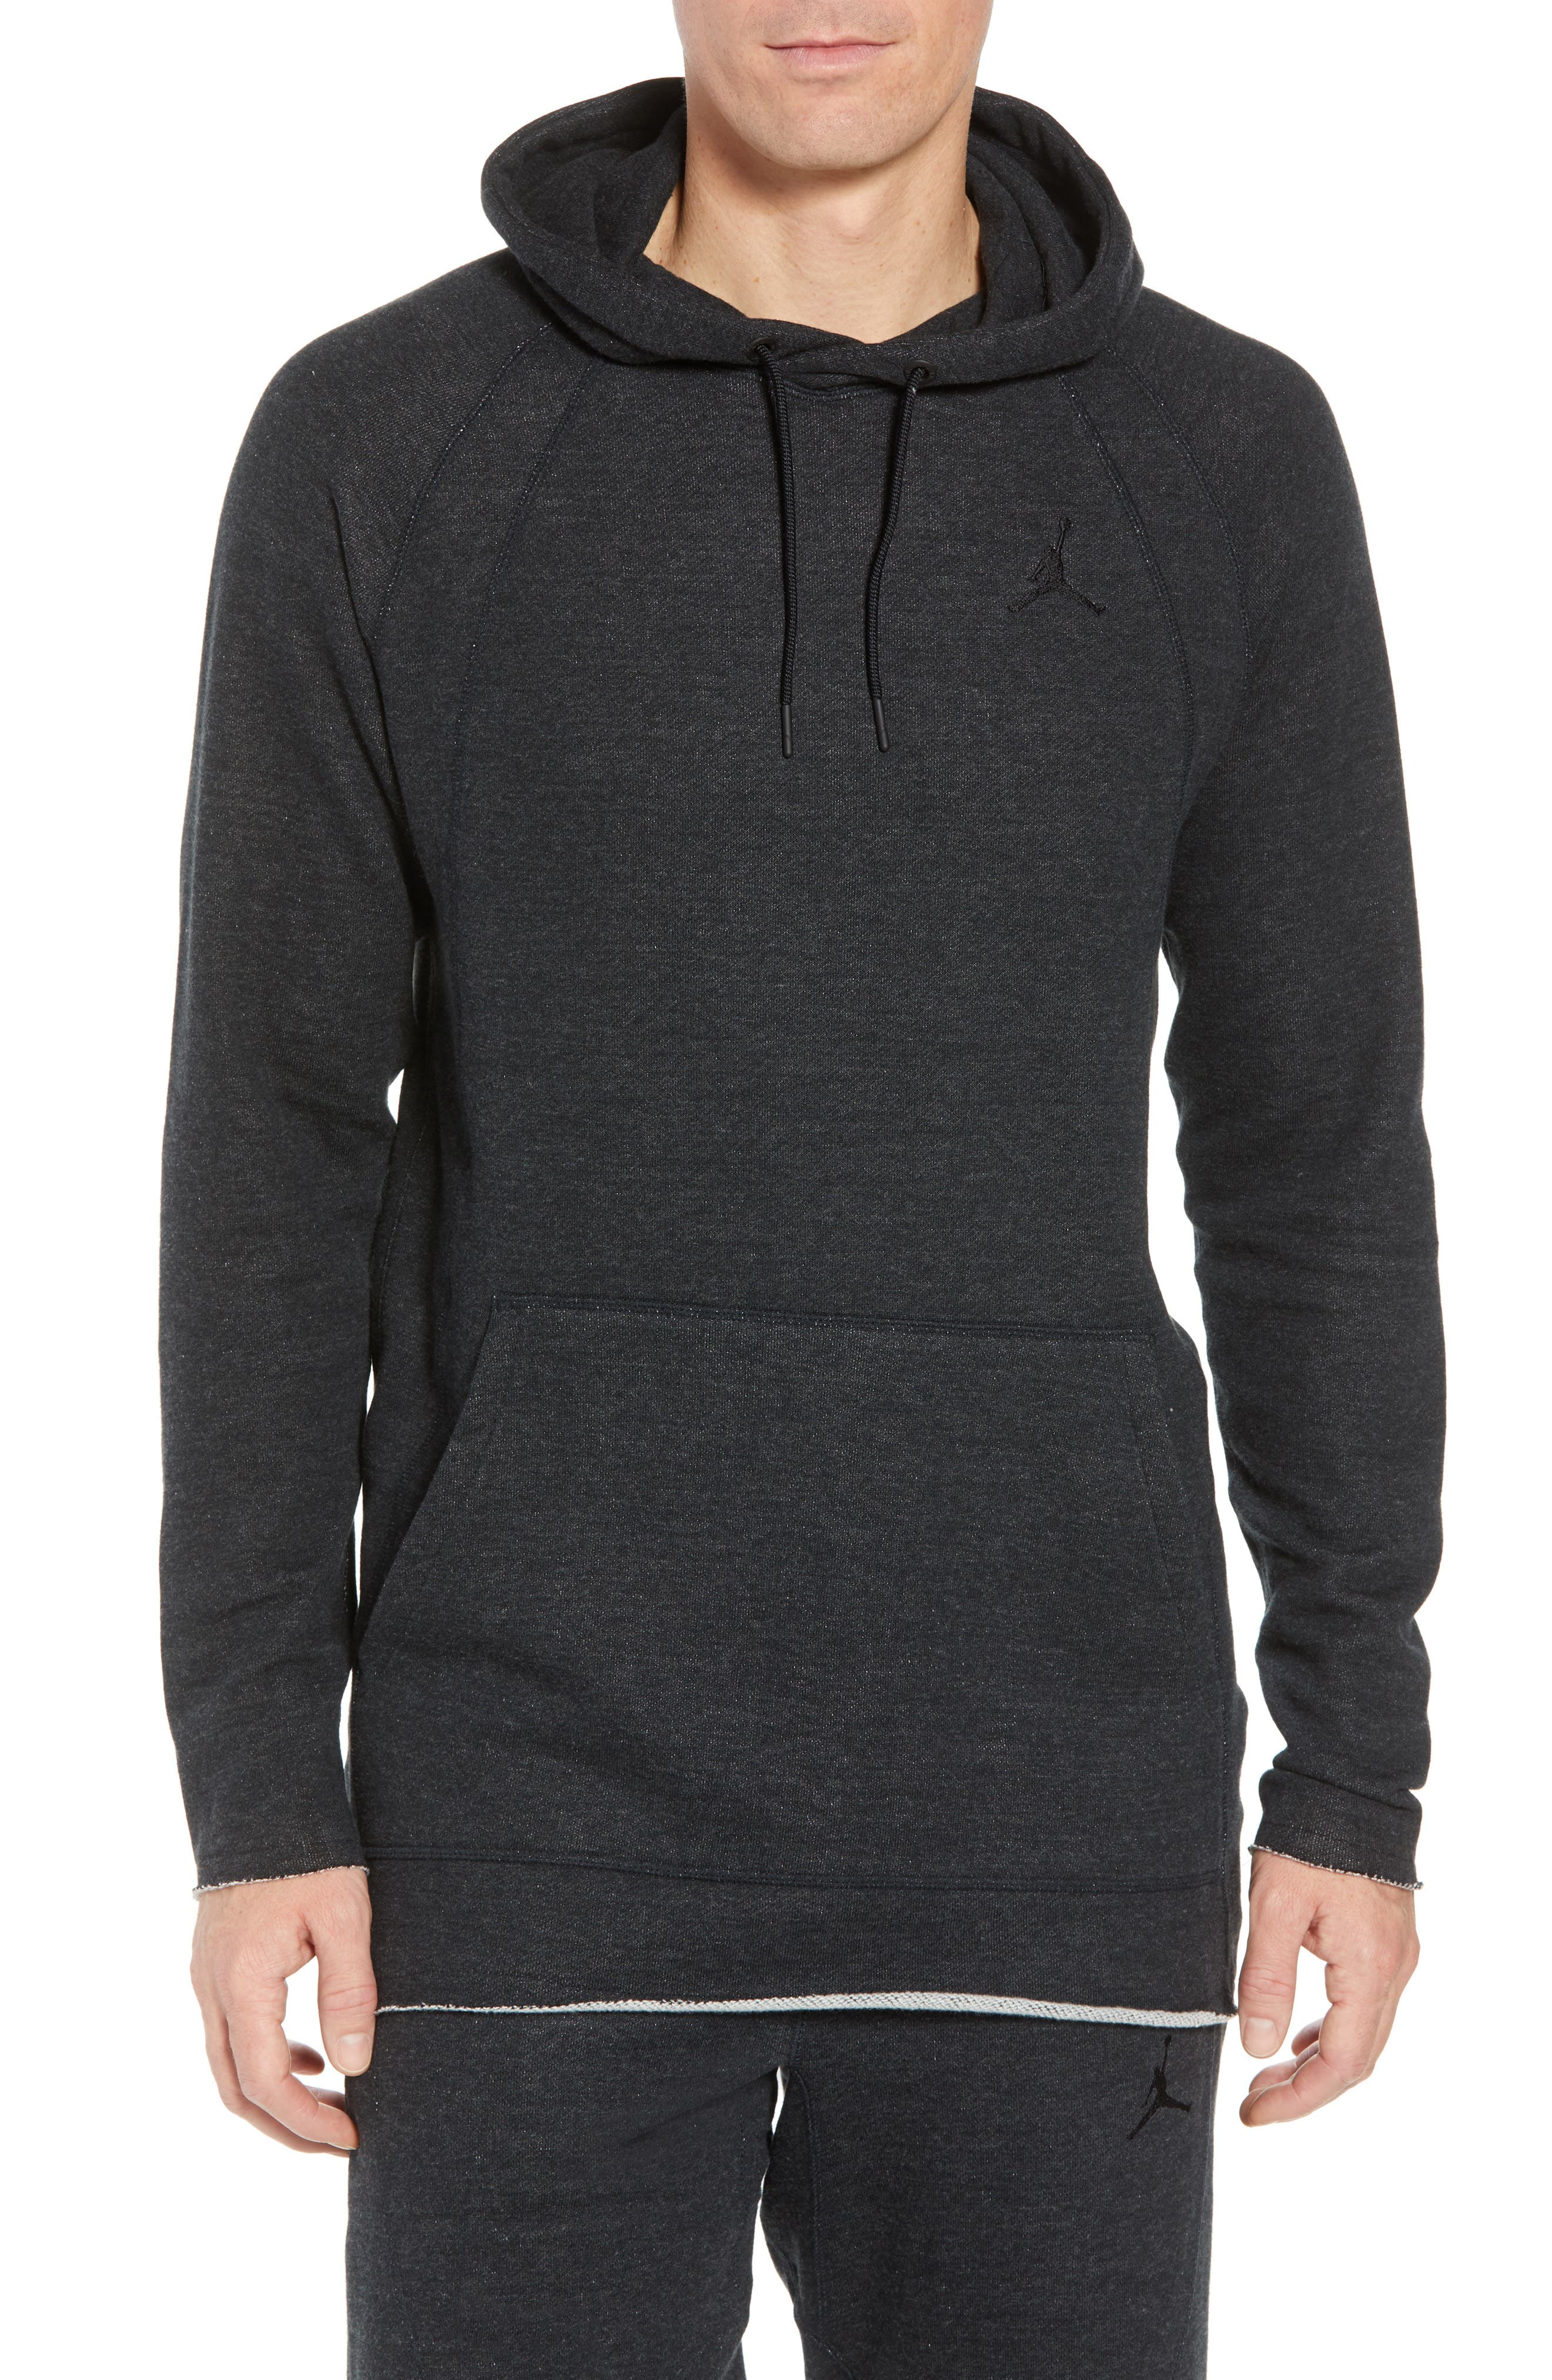 Wings Light French Terry Hoodie,                         Main,                         color, Black Heather/ Black